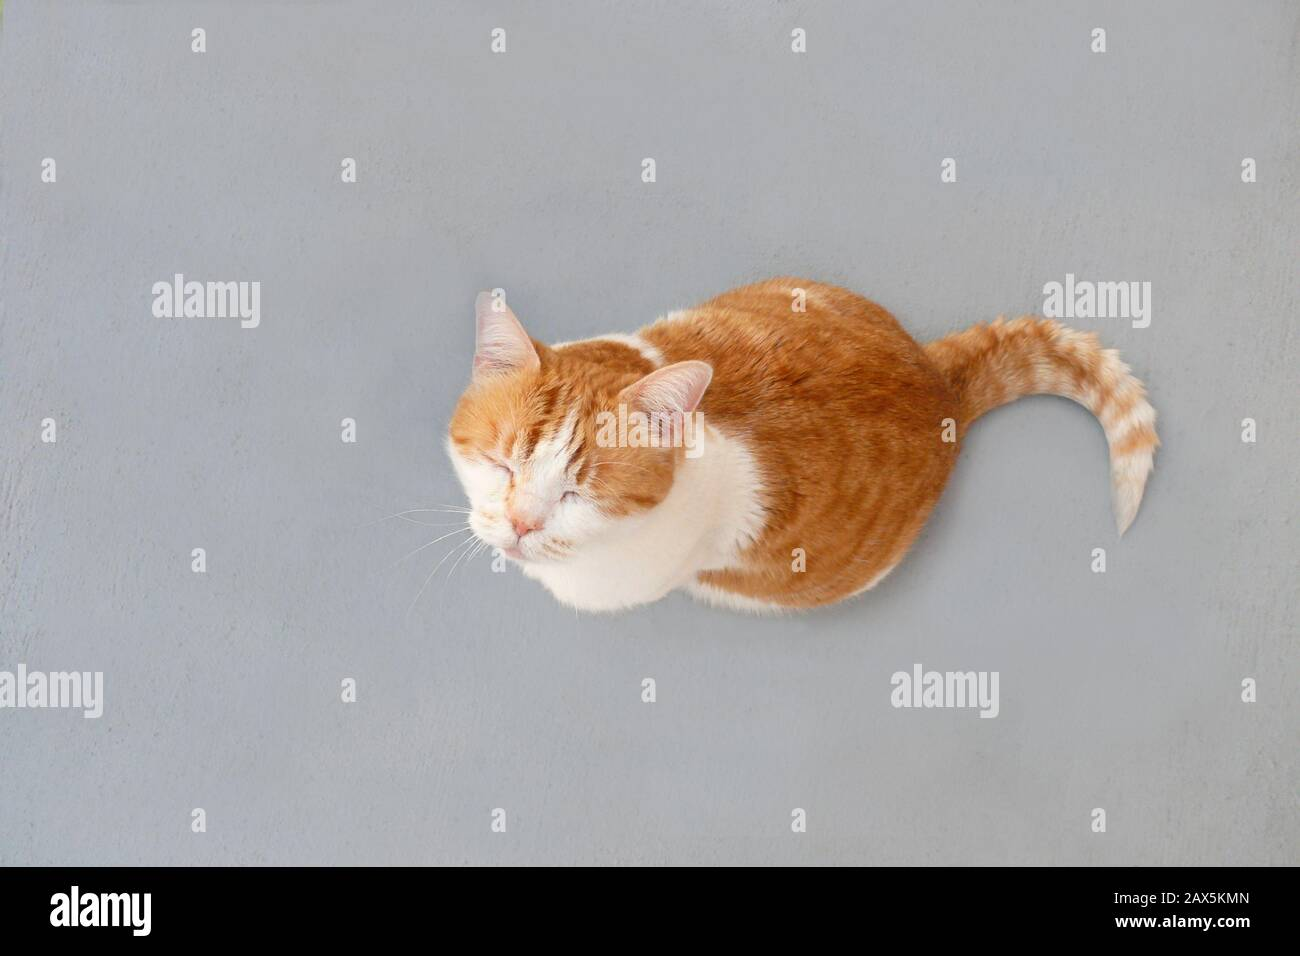 cute-orange-and-white-tabby-cat-looking-up-with-eyes-closed-looking-down-at-an-orange-and-white-domestic-cat-on-a-grey-textured-background-2AX5KMN.jpg